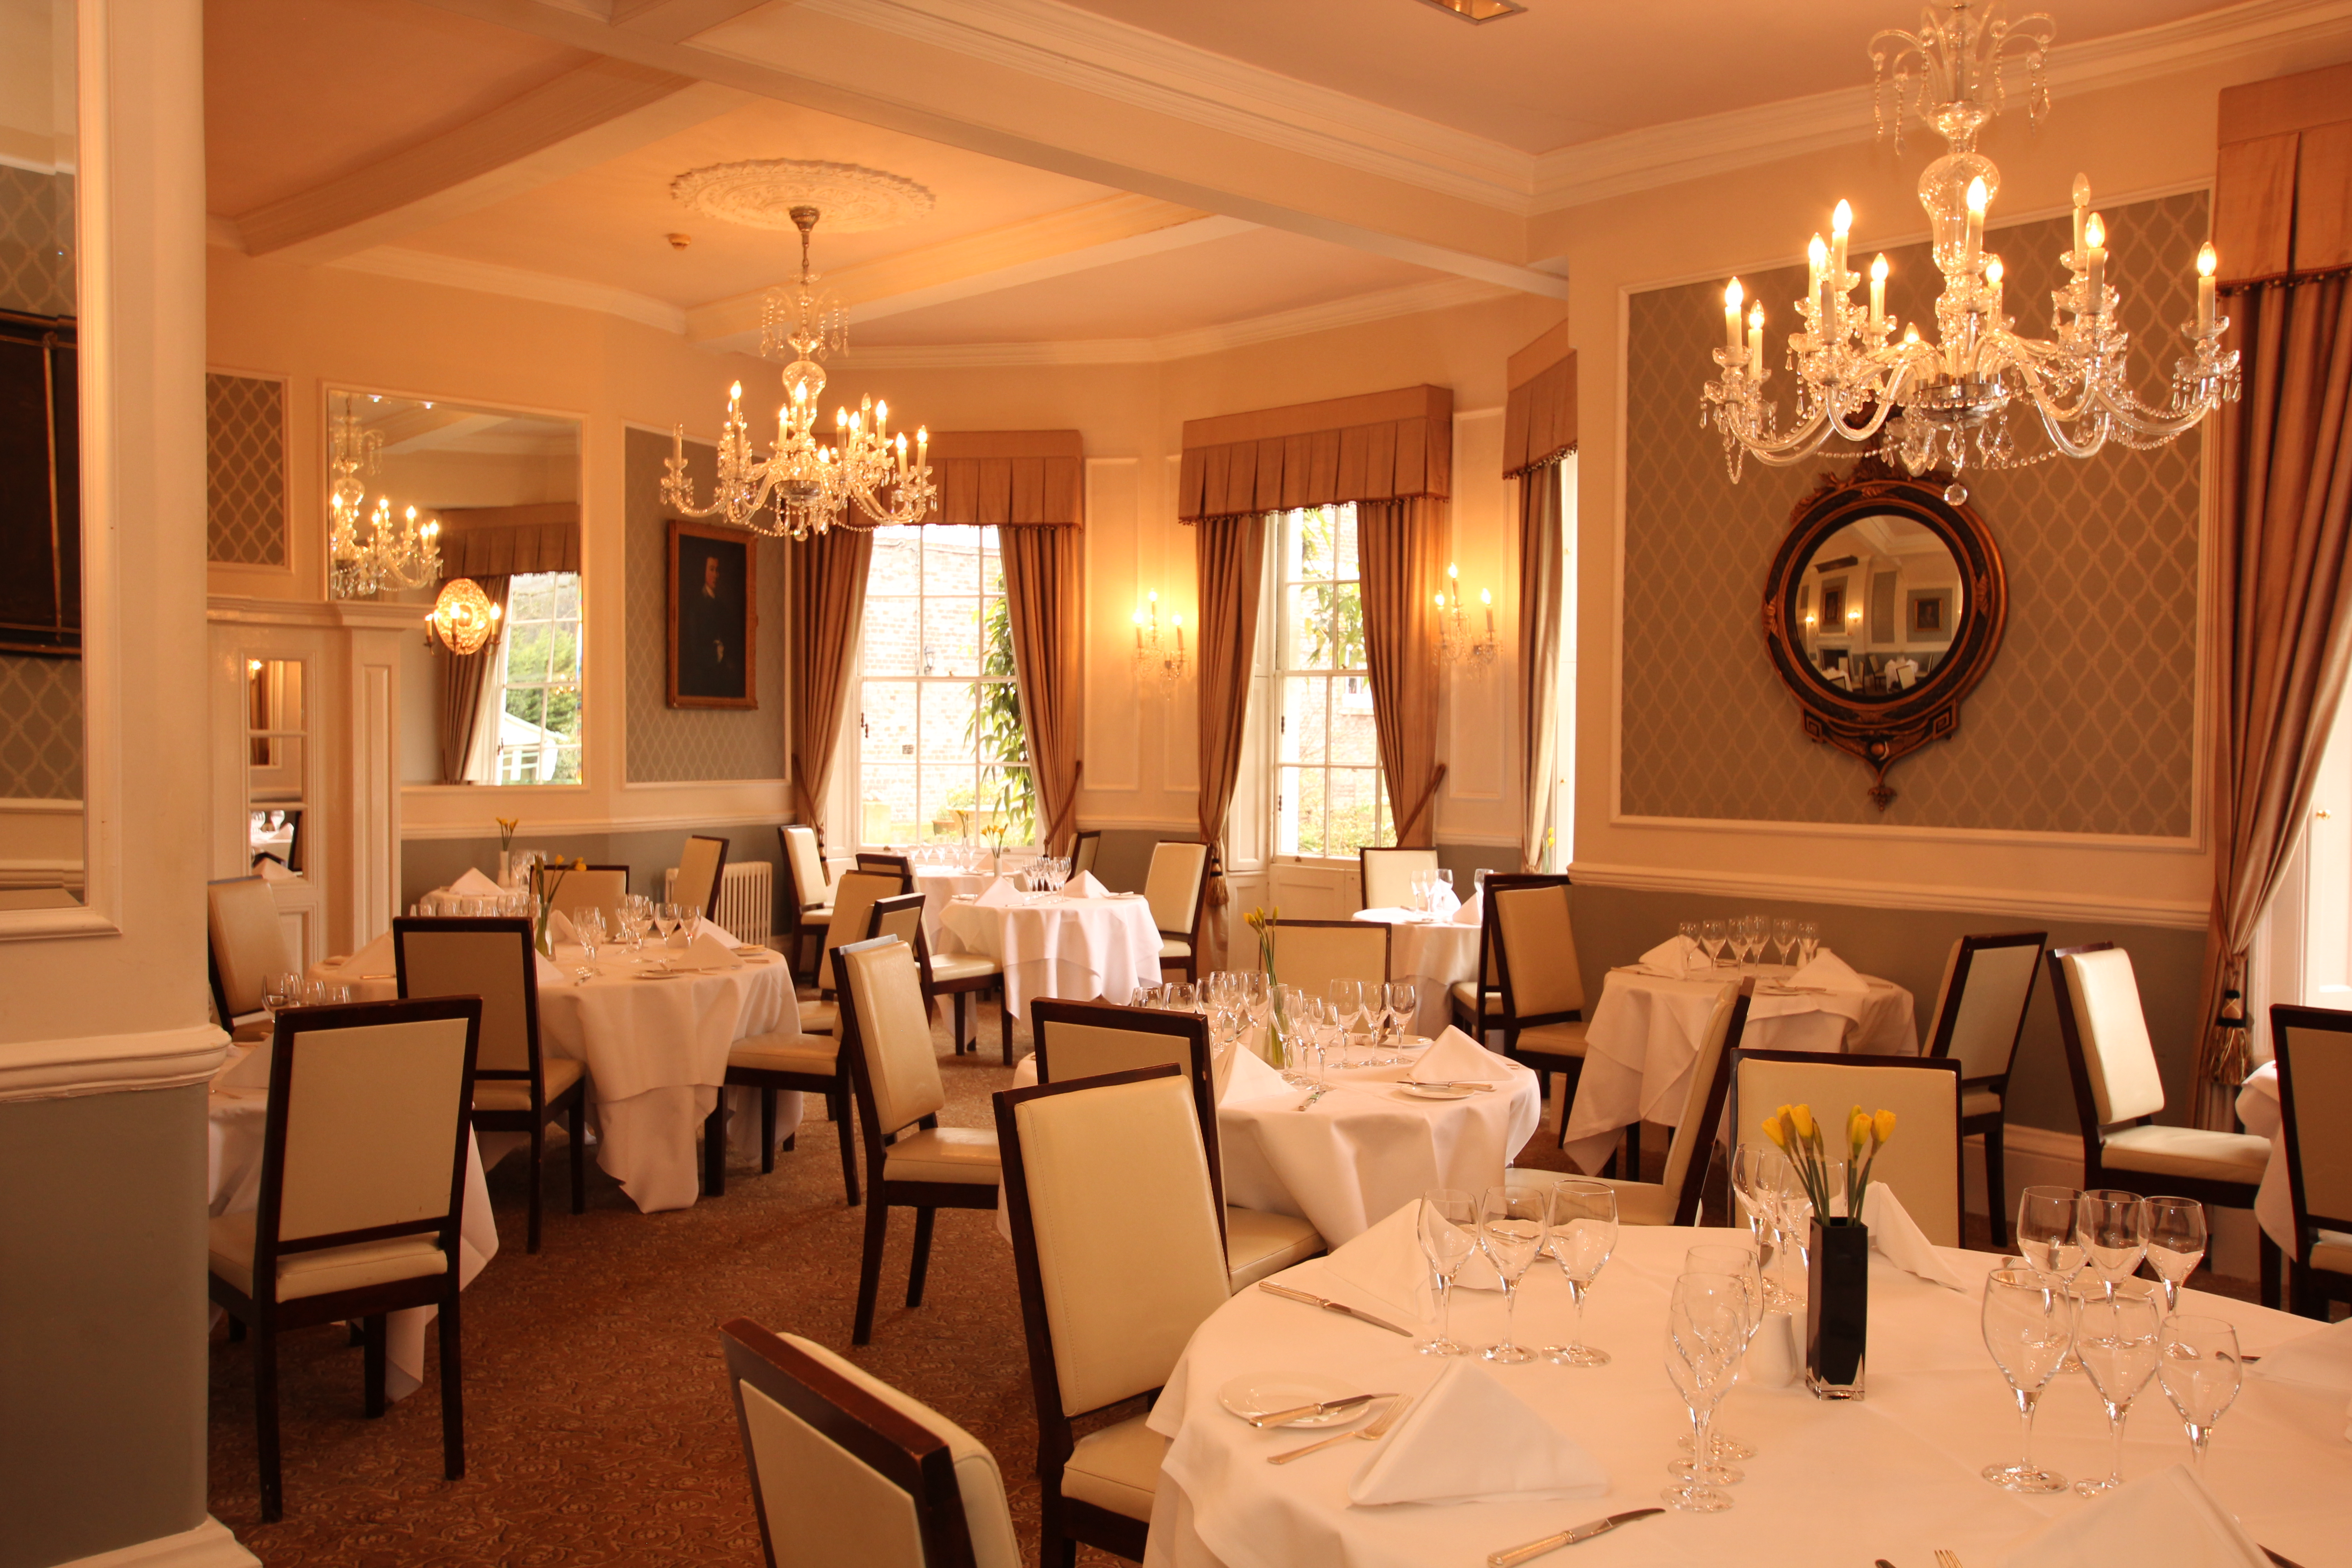 hotel dining rooms | The Shelleys Hotel Restaurant & Bar, High Street, Lewes ...